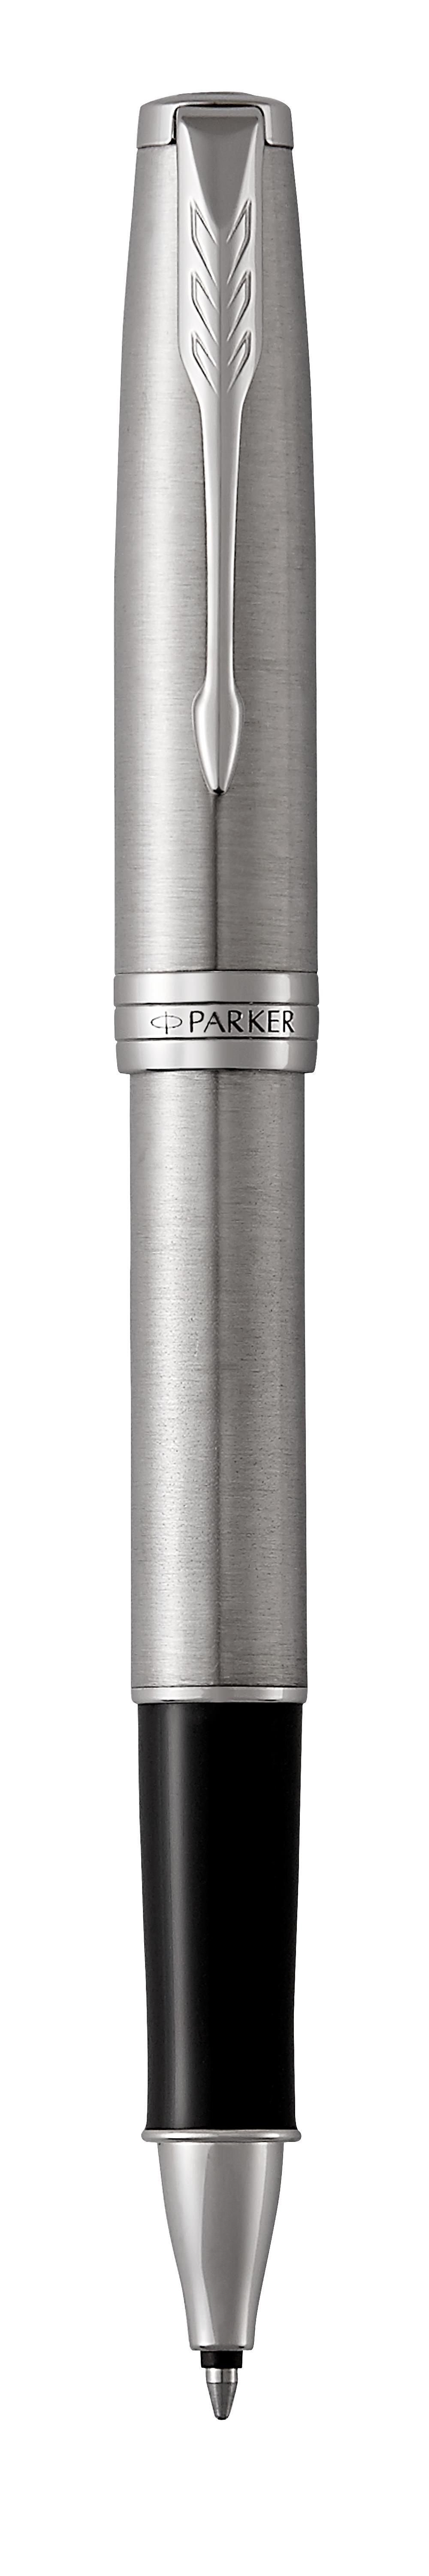 картинка Ручка-роллер Parker Sonnet Core - Stainless Steel CT, ручка-роллер, M, BL/1931511 от магазина Паркер66